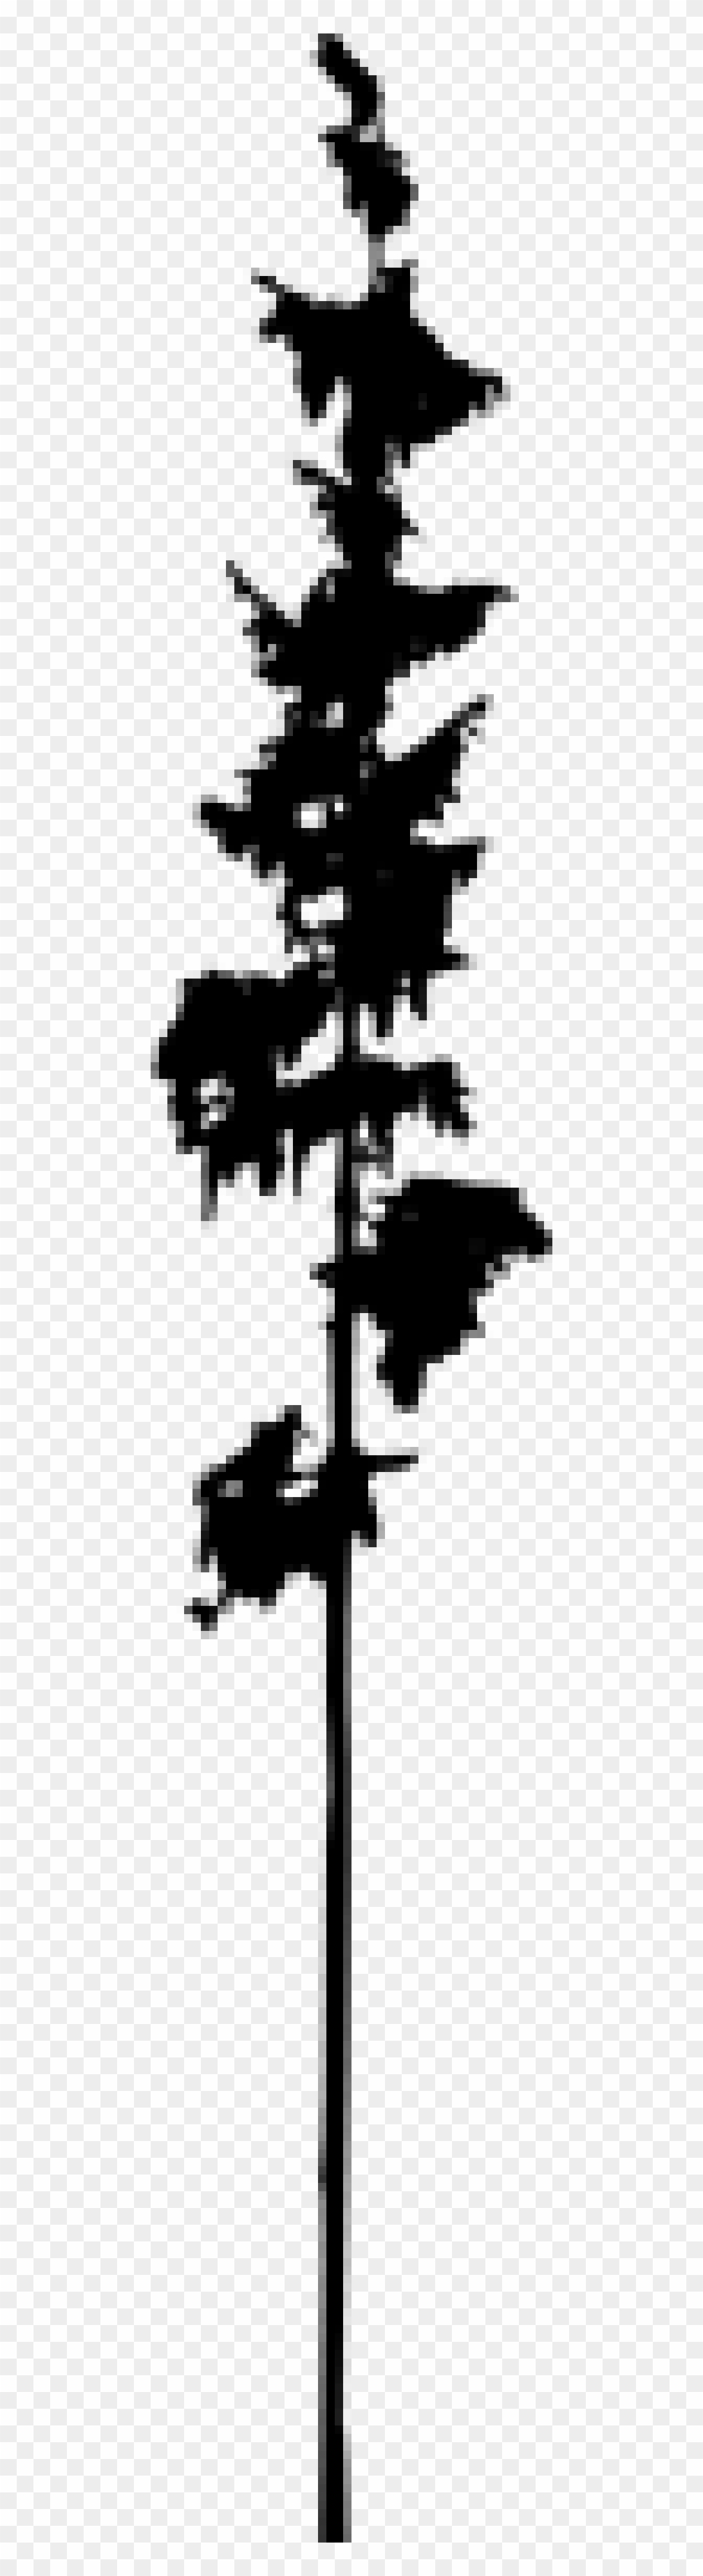 Free Png Pine Tree Silhouette Png Images Transparent - Pine #1251